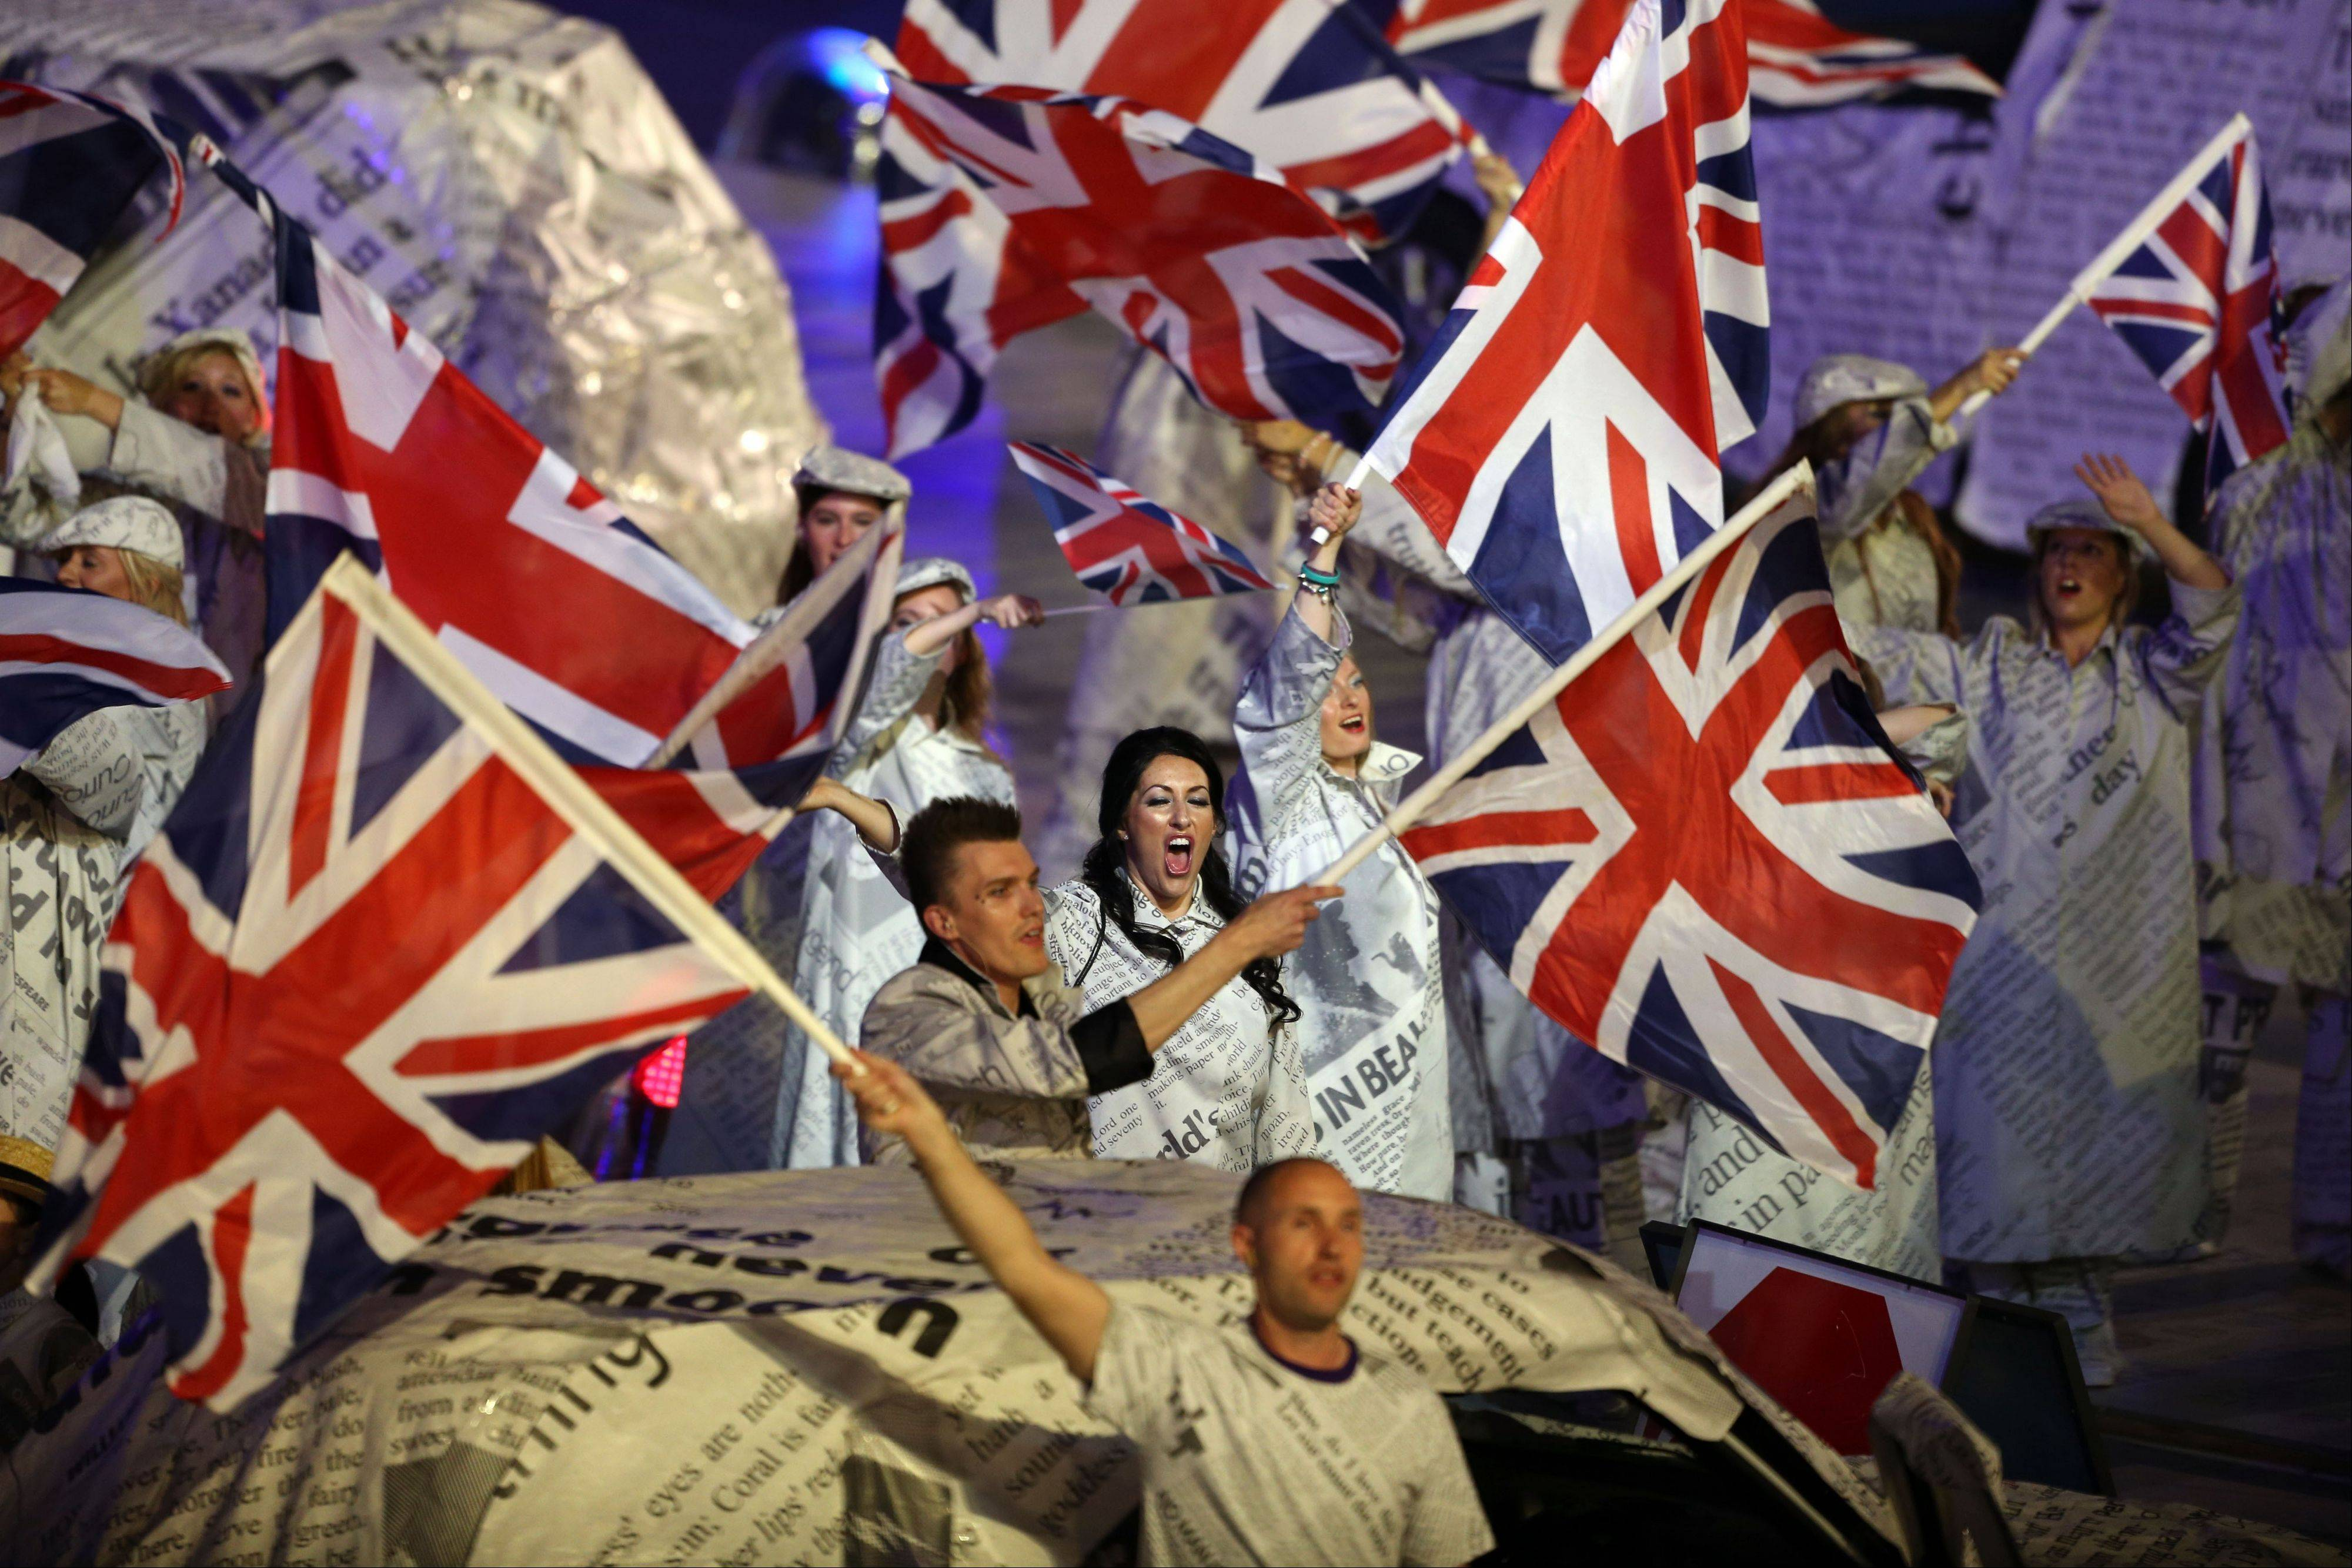 Performers wave the British flag during the Closing Ceremony at the 2012 Summer Olympics.